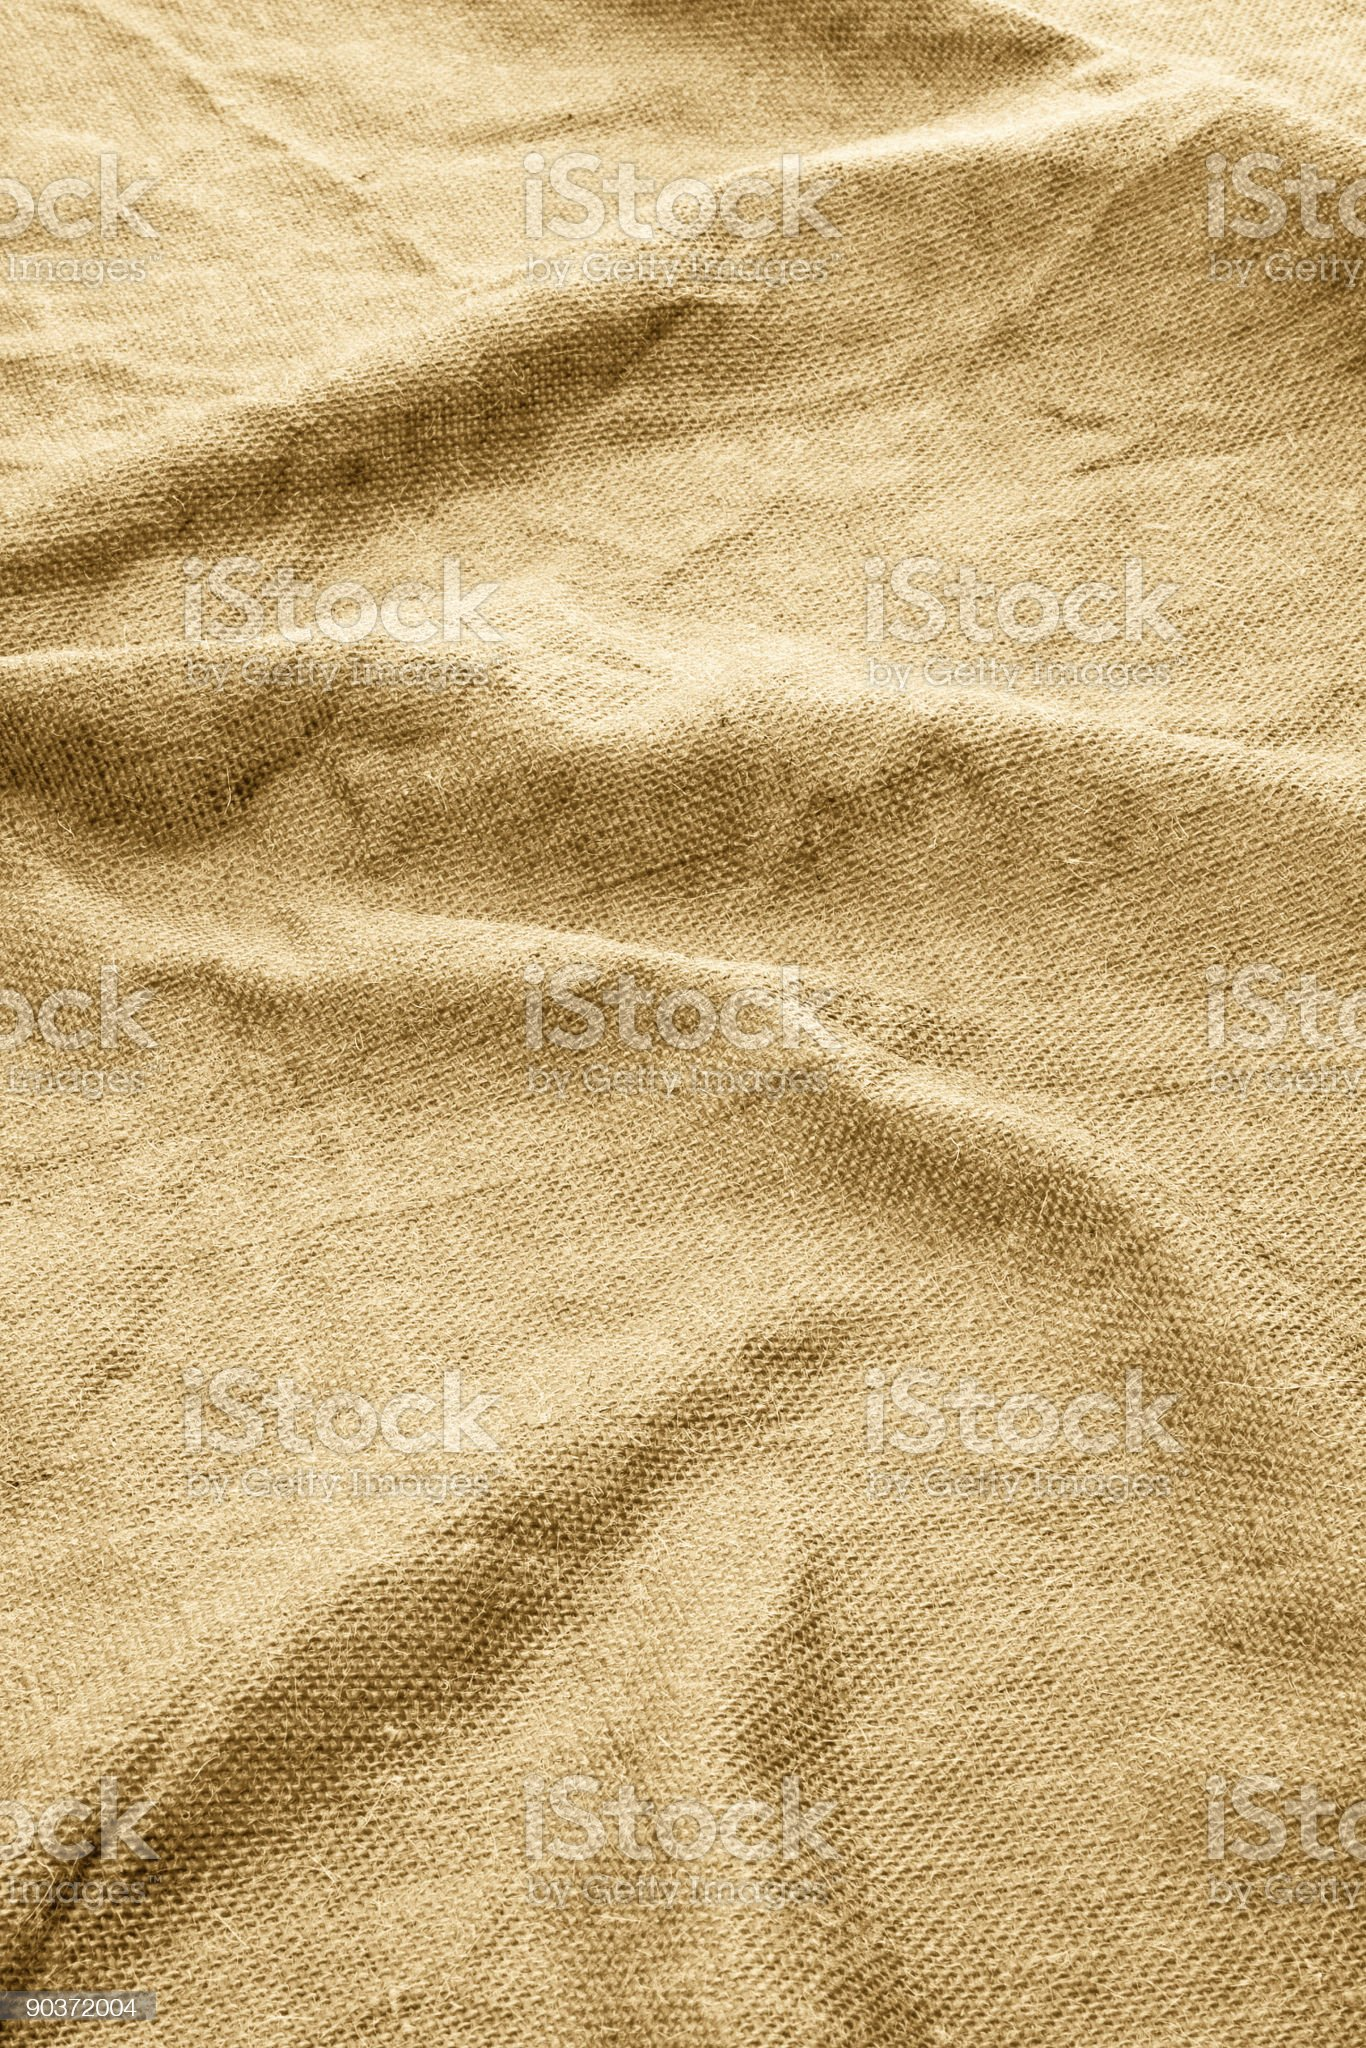 Closeup of Burlap Cloth Fabric With Ripples and Wrinkles royalty-free stock photo